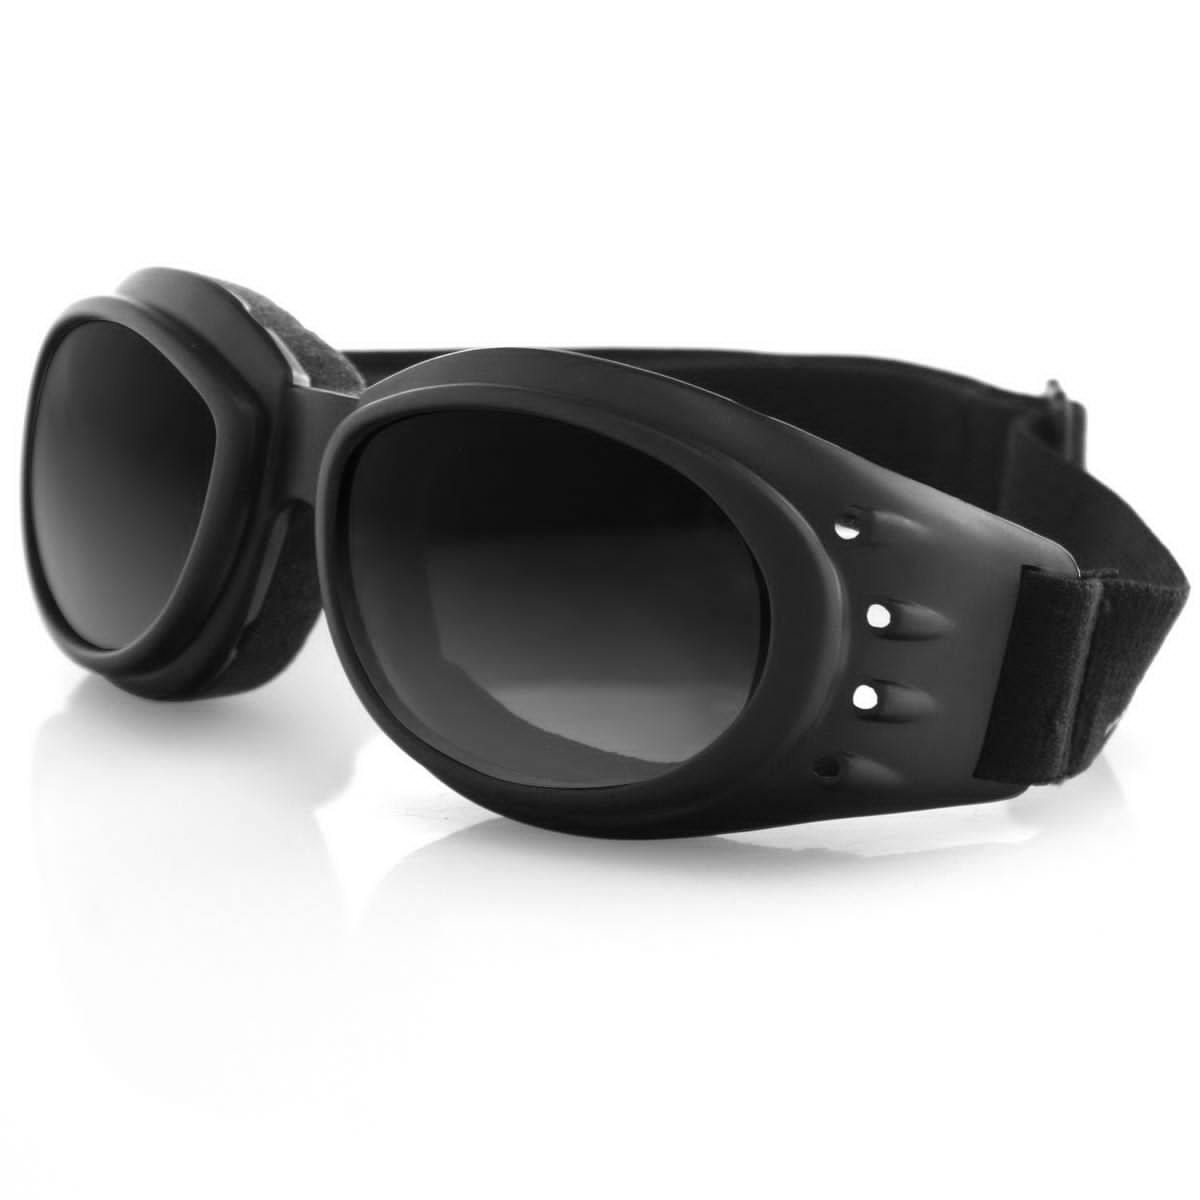 Bobster CRUISER II Interchangeable Riding Goggles